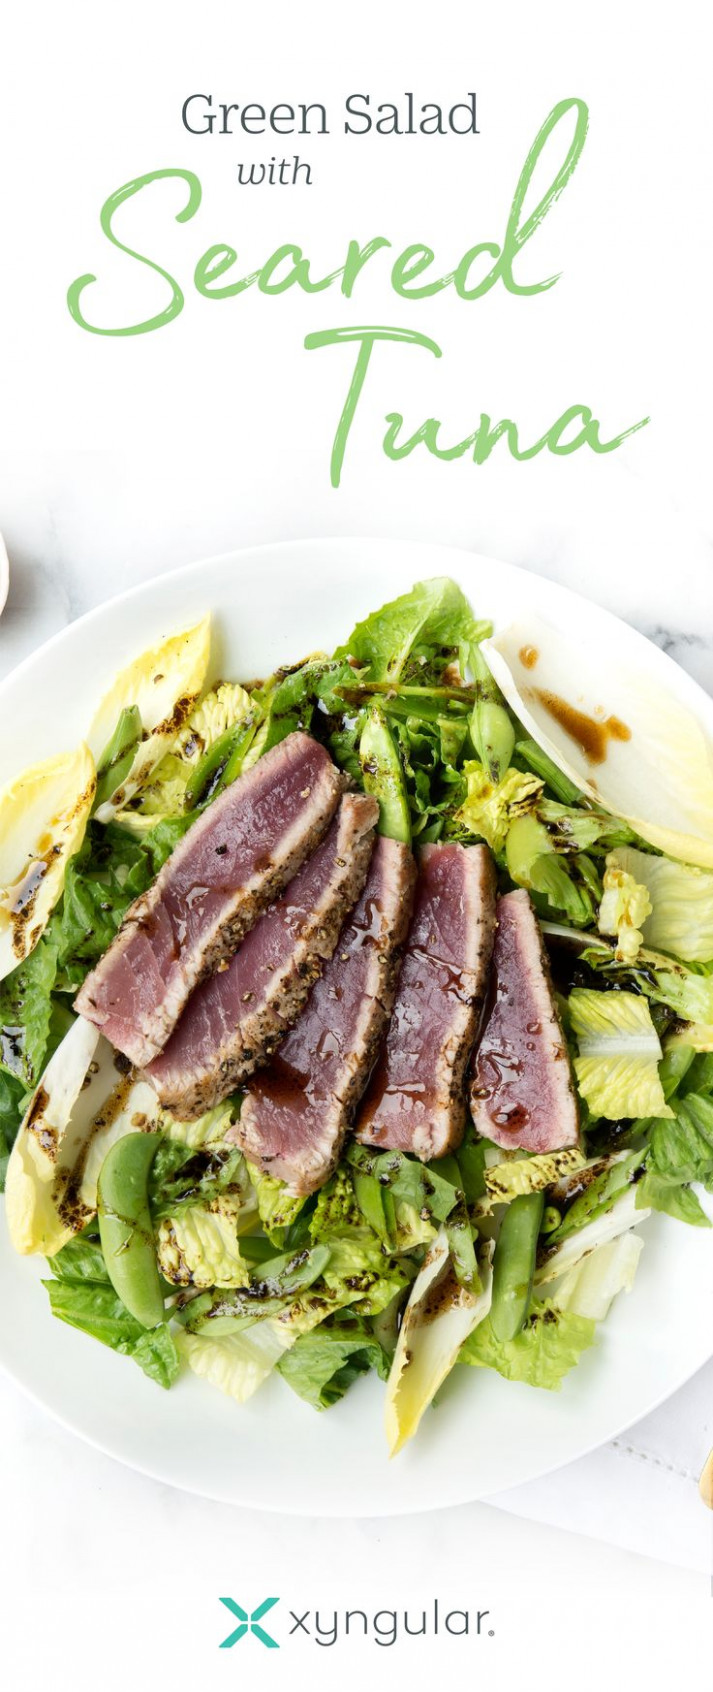 A healthy Green Salad with Seared Tuna recipe approved for ...